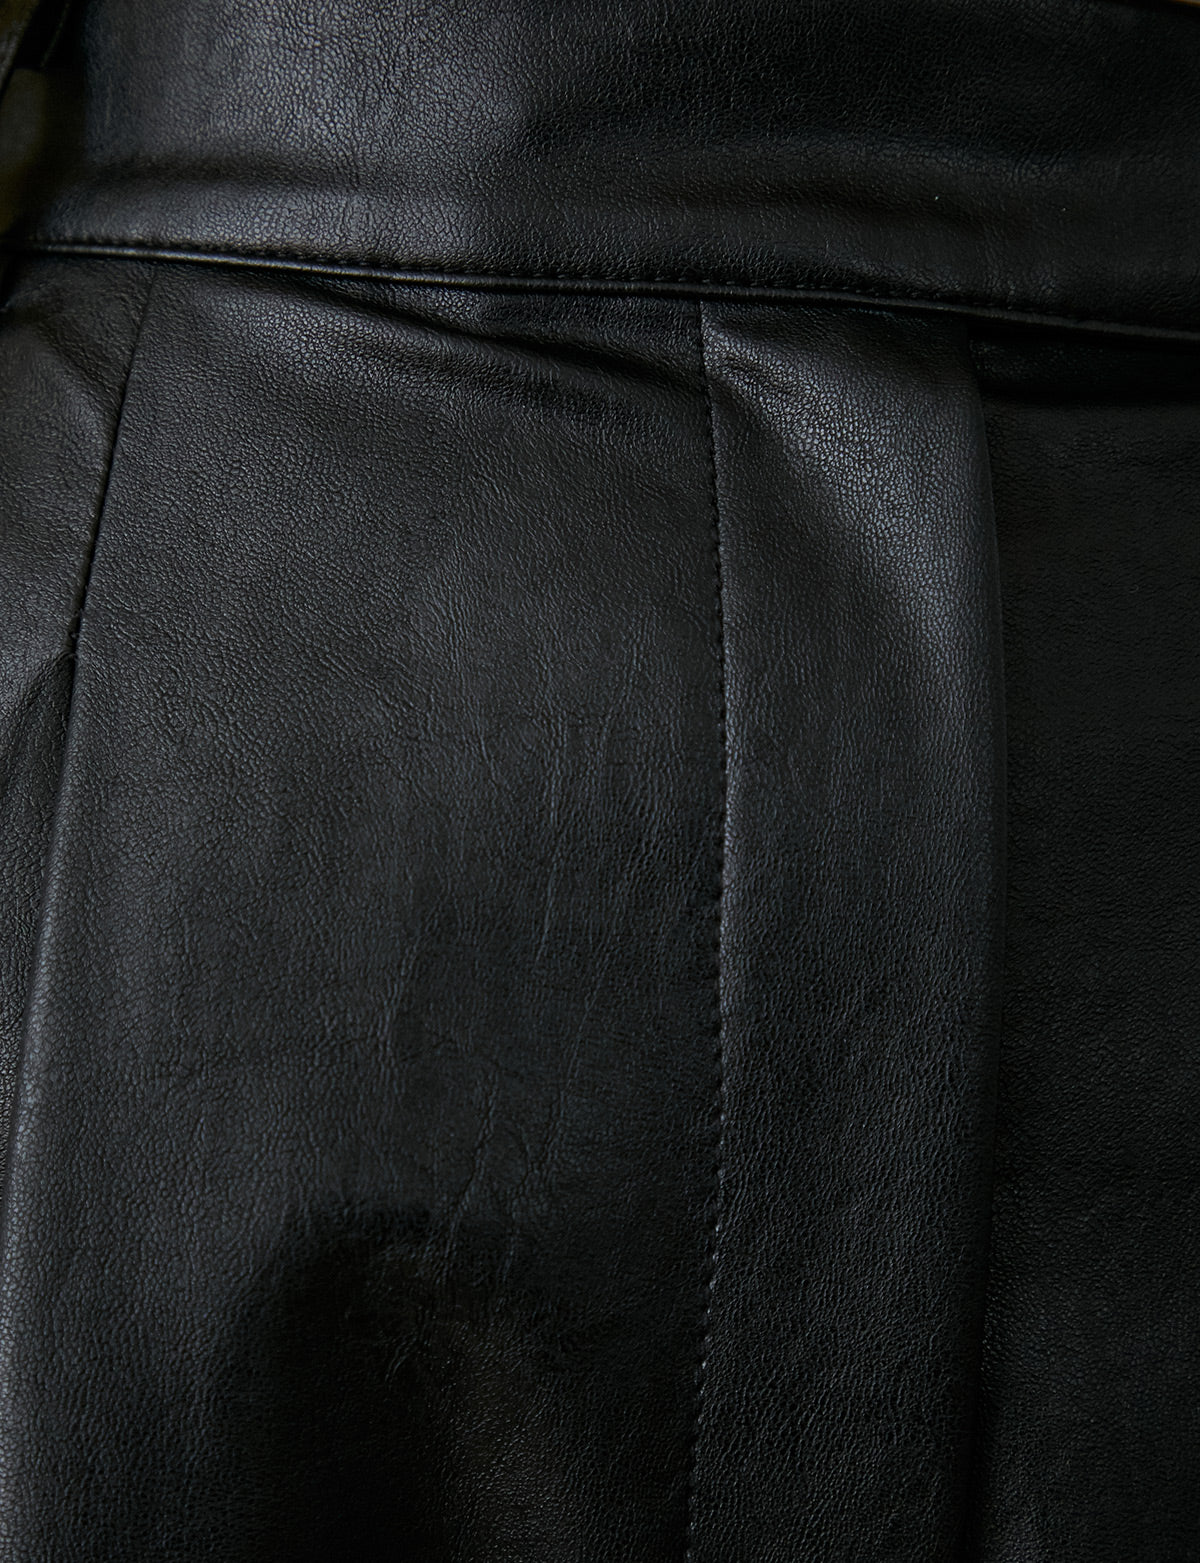 Jaime Vegan Leather Pants